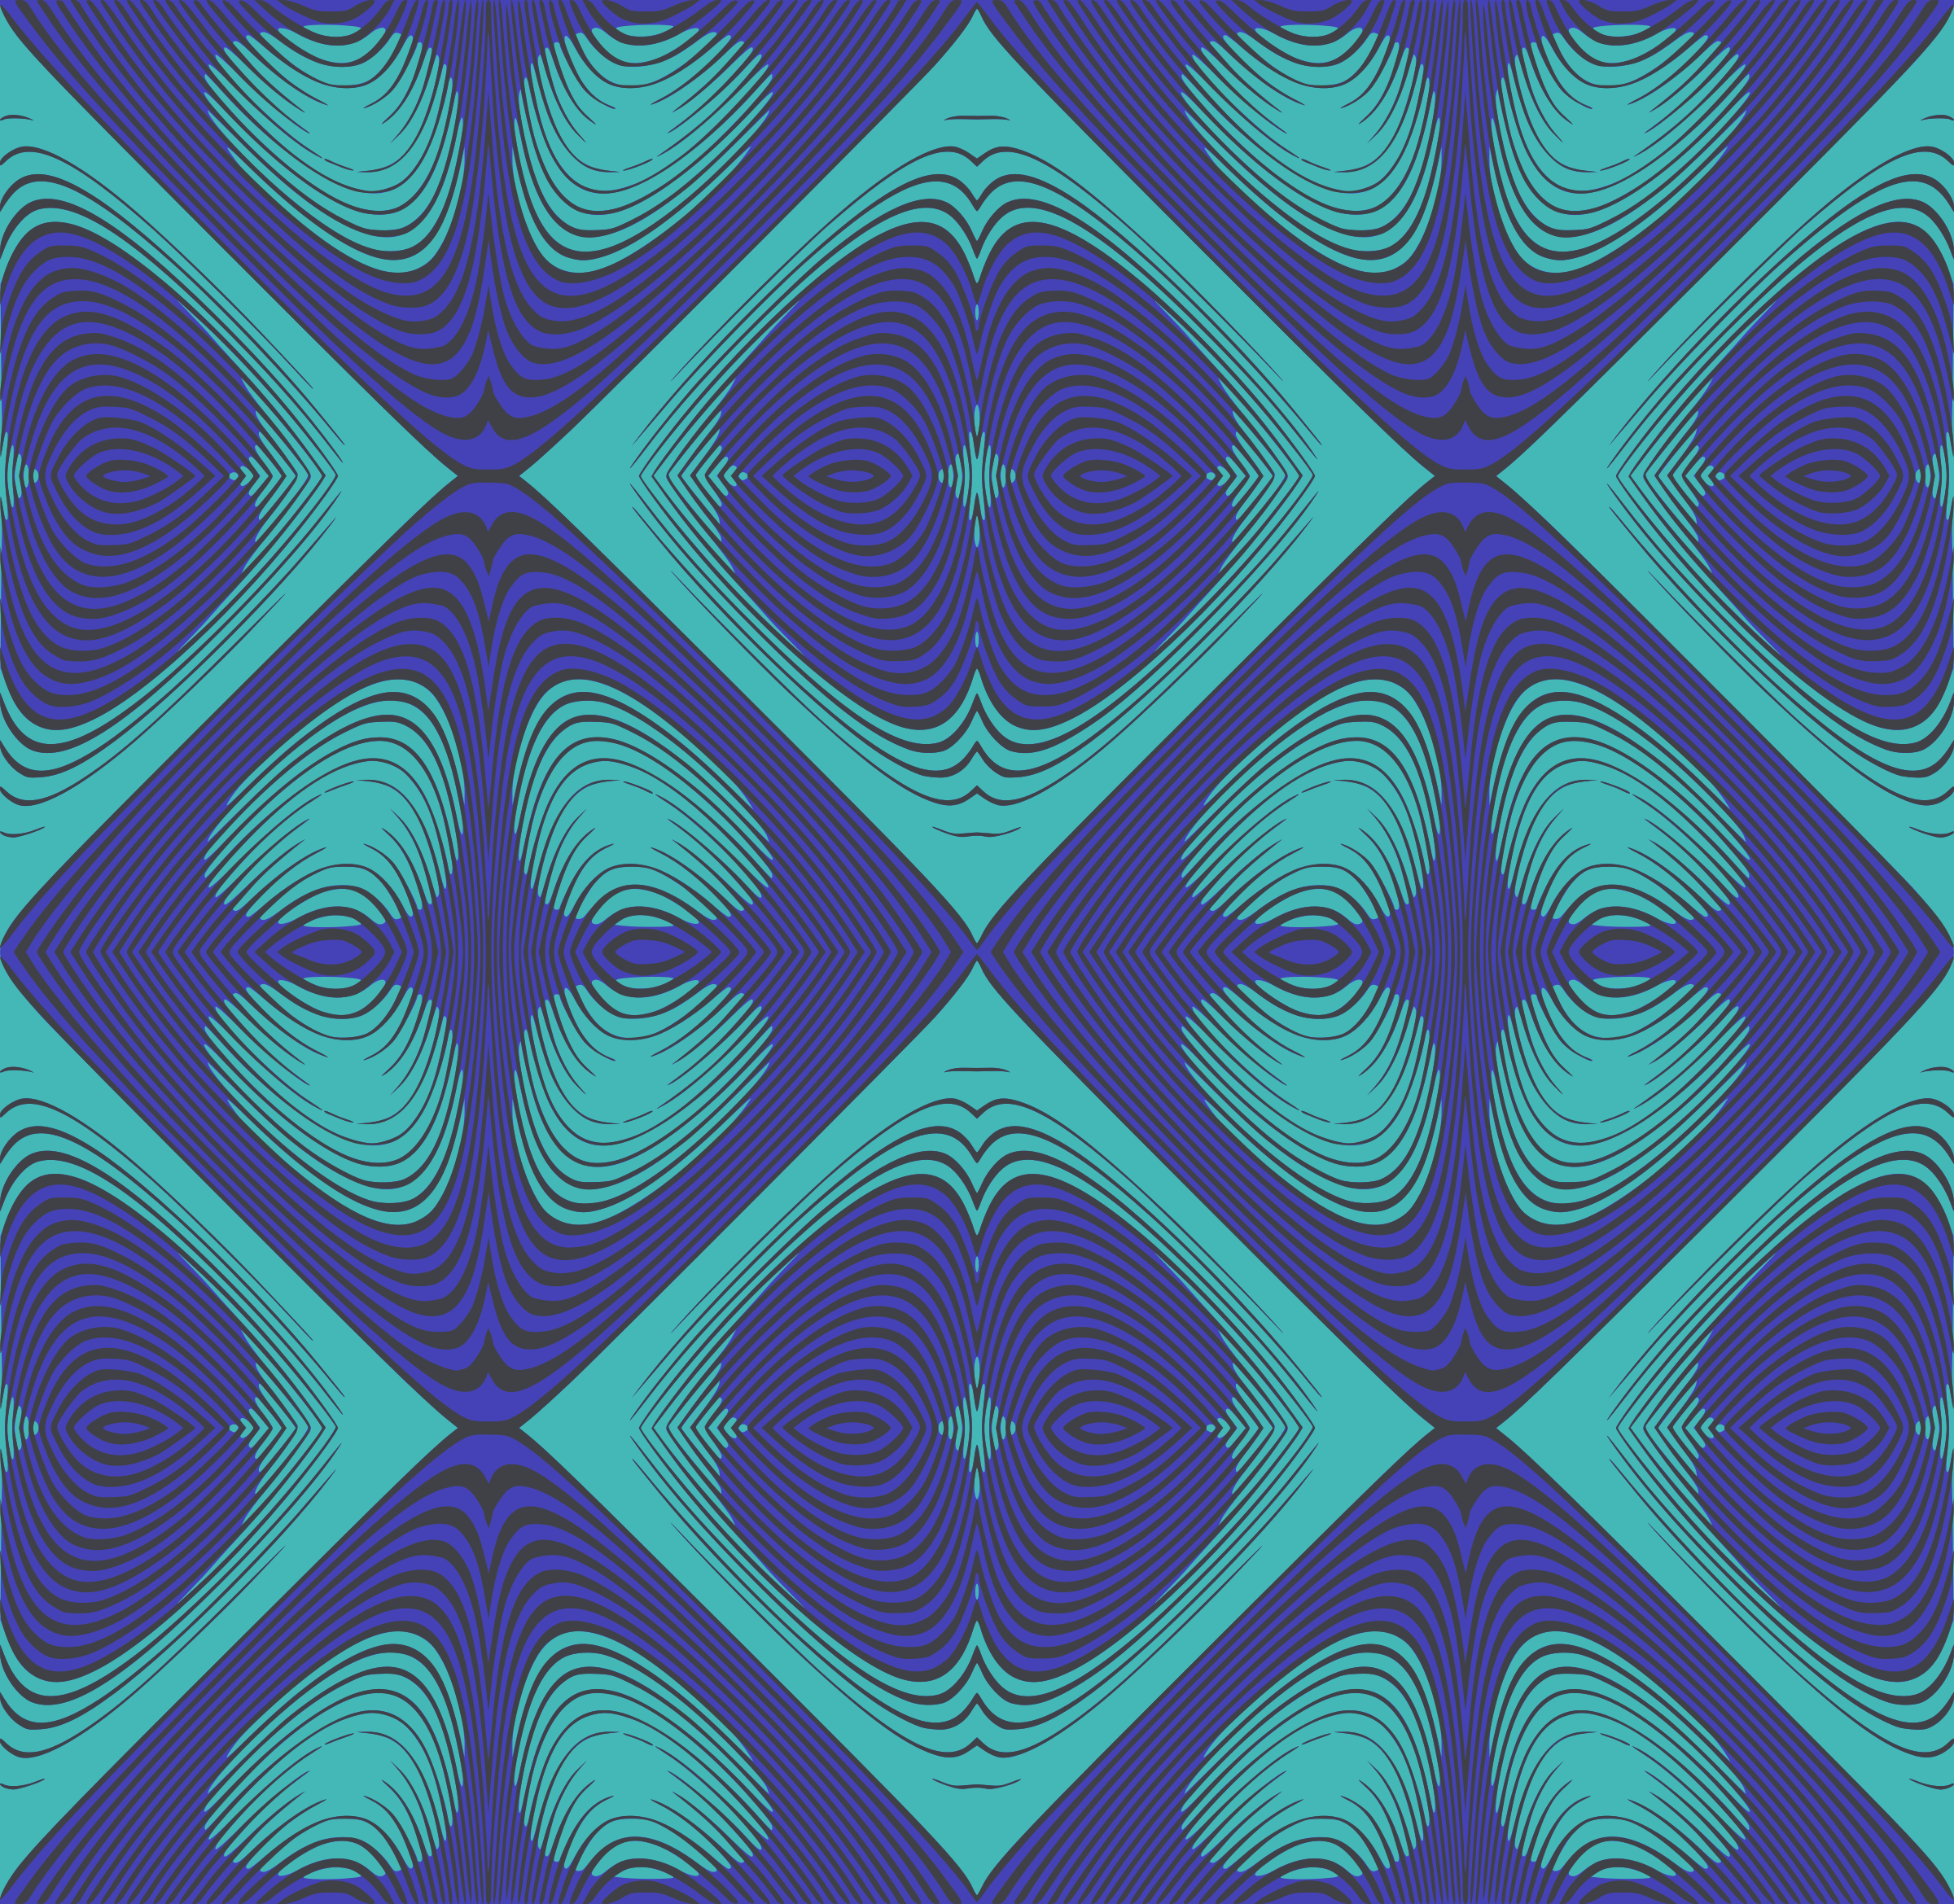 Background pattern 57 (3-colour) by Firkin